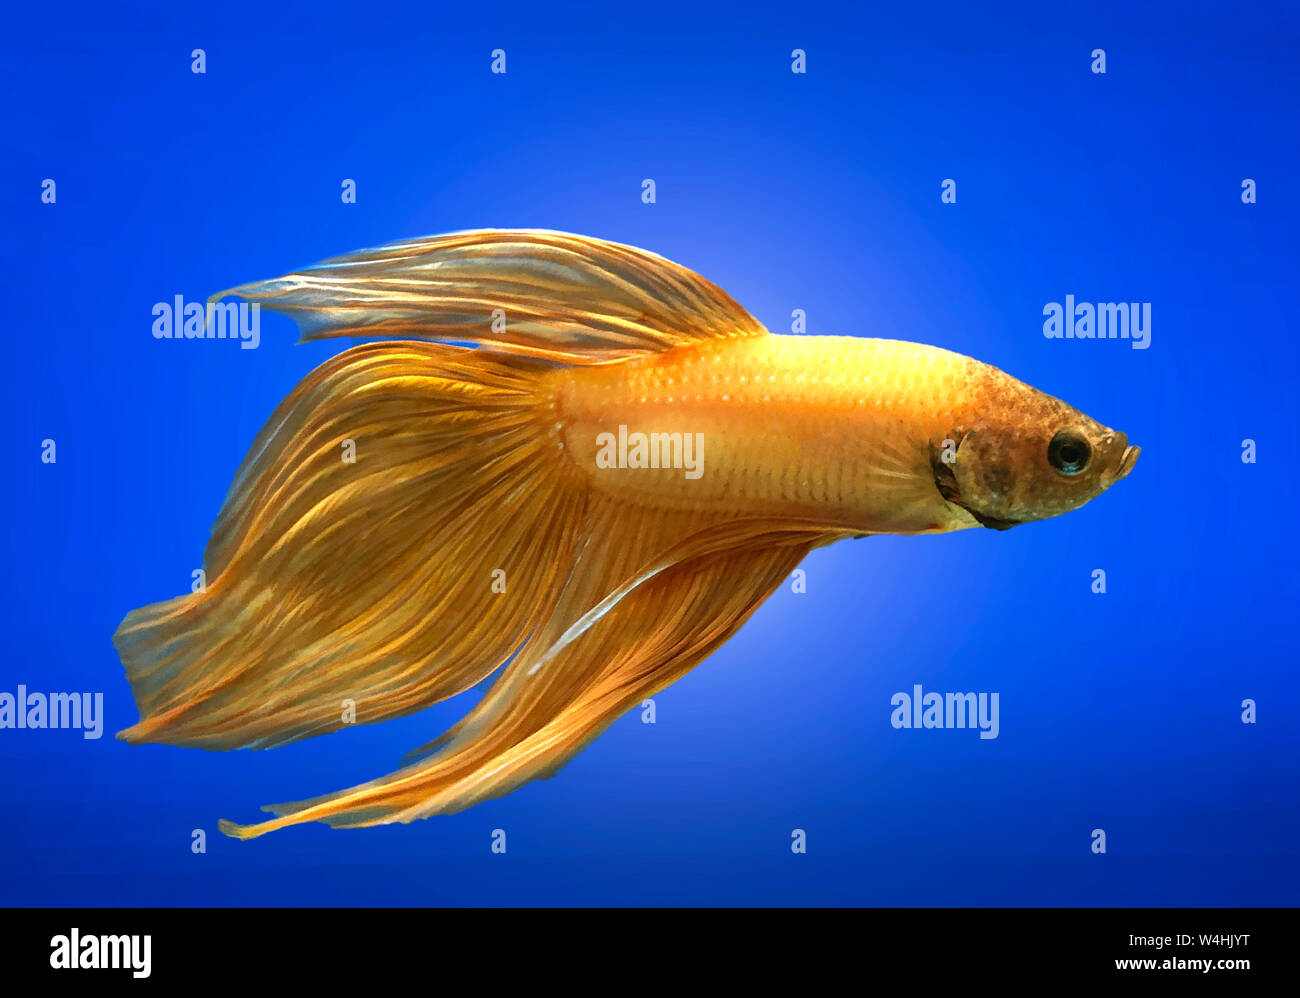 Golden Siamese fighting fish isolated on blue background. Stock Photo